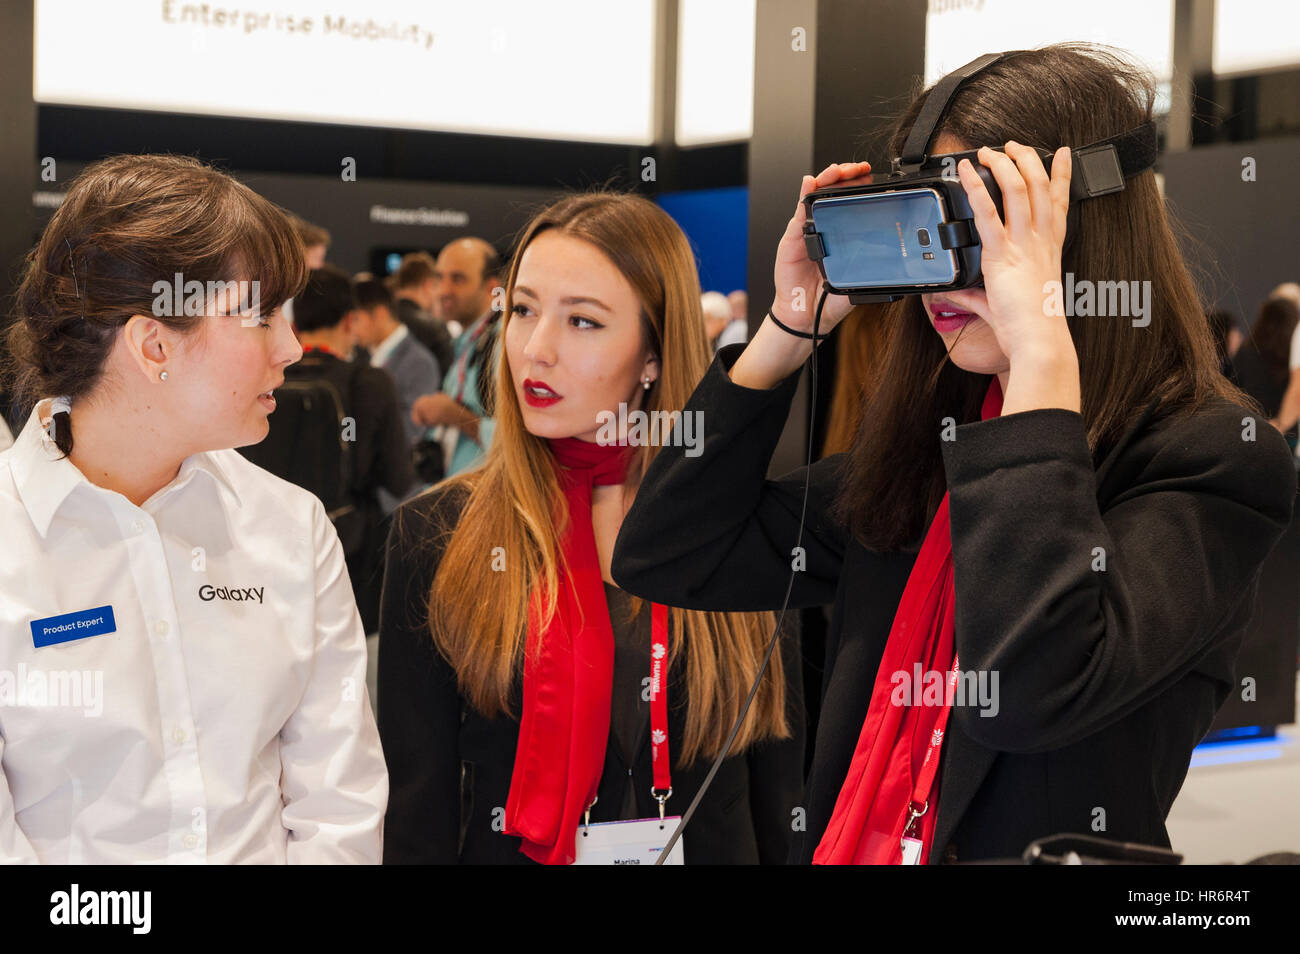 Barcelona, Spain. 27th Feb, 2017. A girl testing a Samsung Gear VR glasses during the Mobile World Congress wireless show in Barcelona. The annual Mobile World Congress hosts some of the world's largest communications companies, with many unveiling their latest phones and wearables gadgets. Credit: Charlie Perez/Alamy Live News Stock Photo